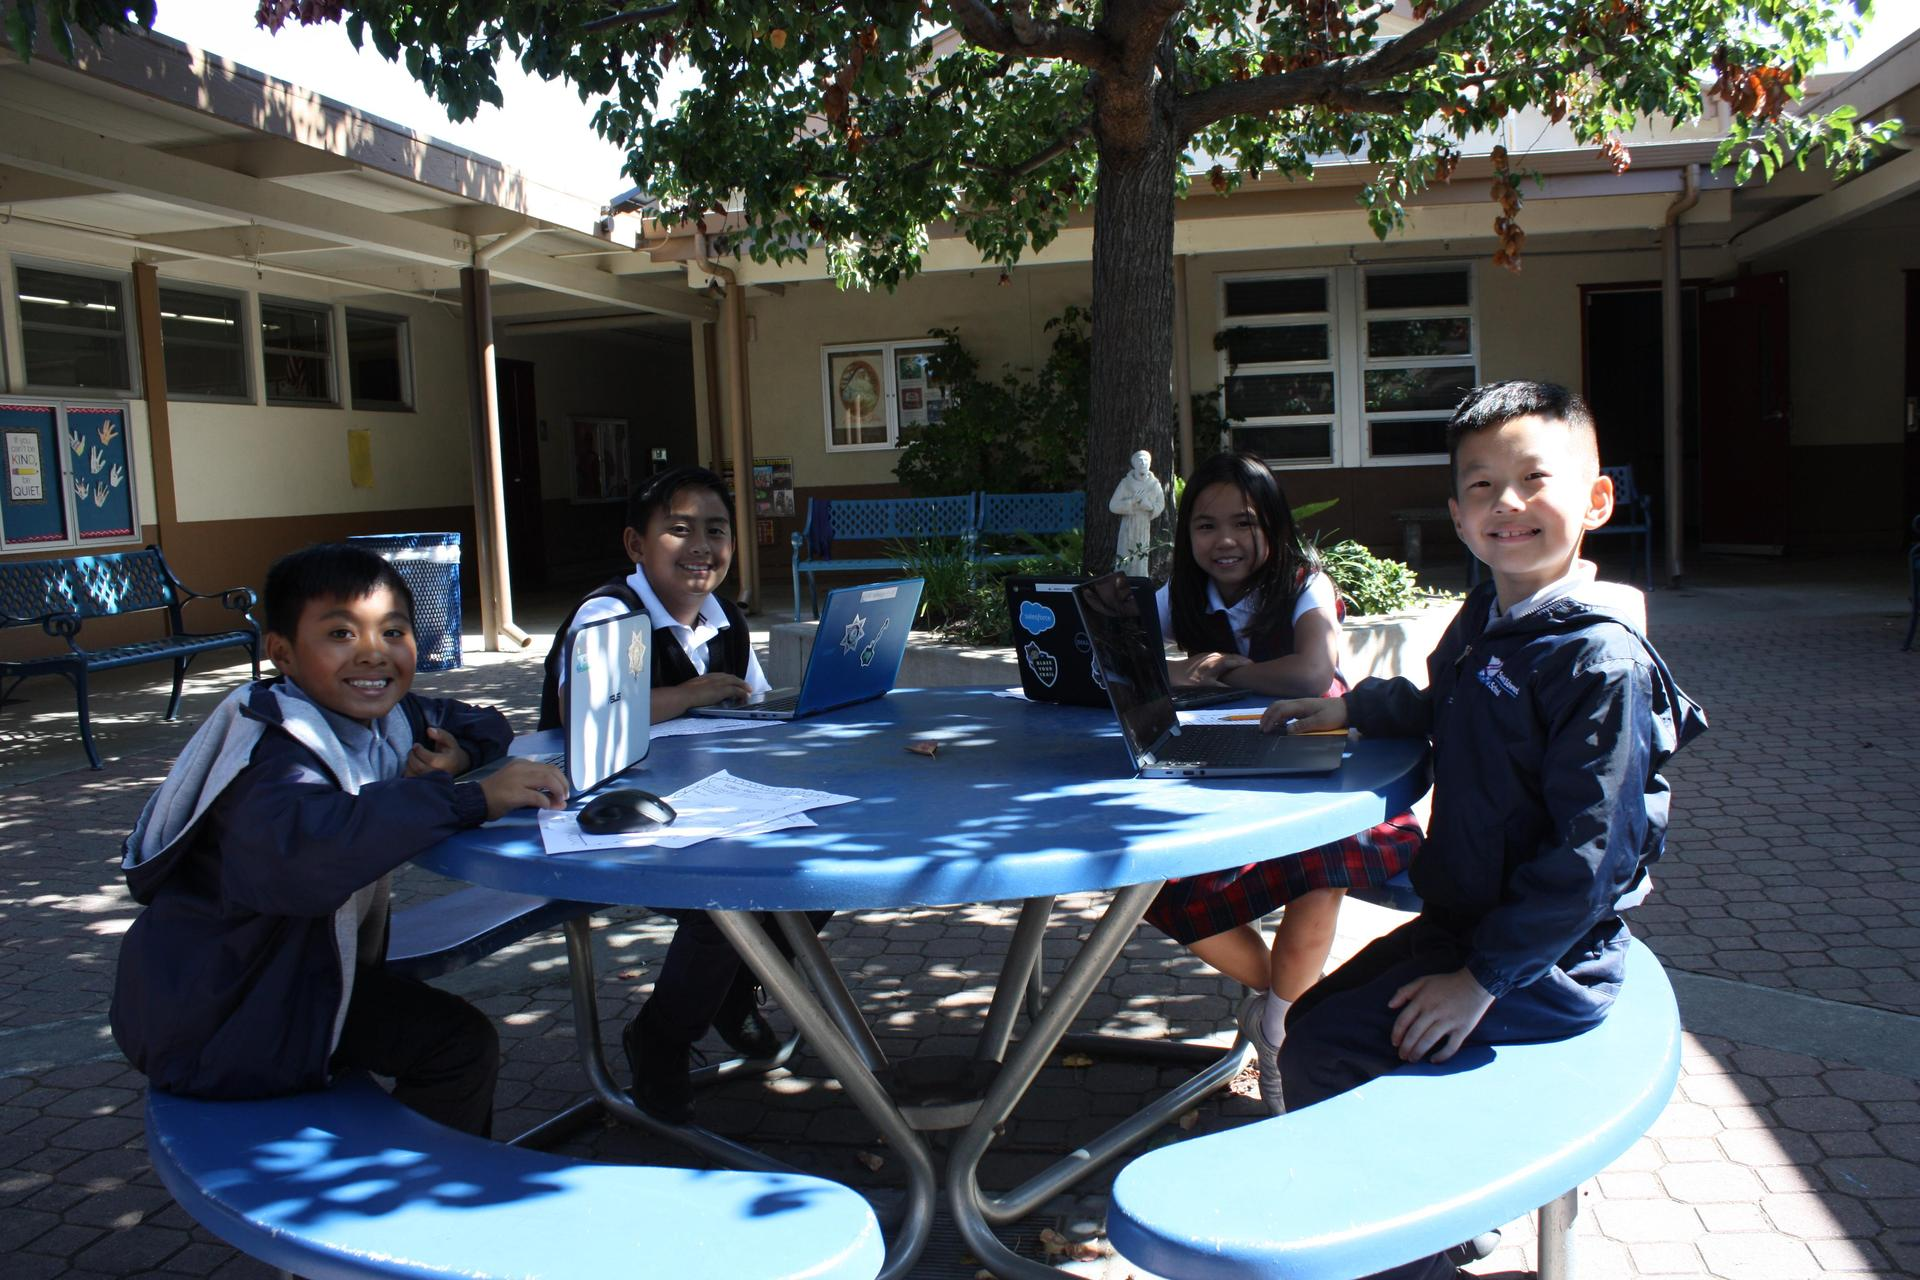 Students sitting at table with laptops